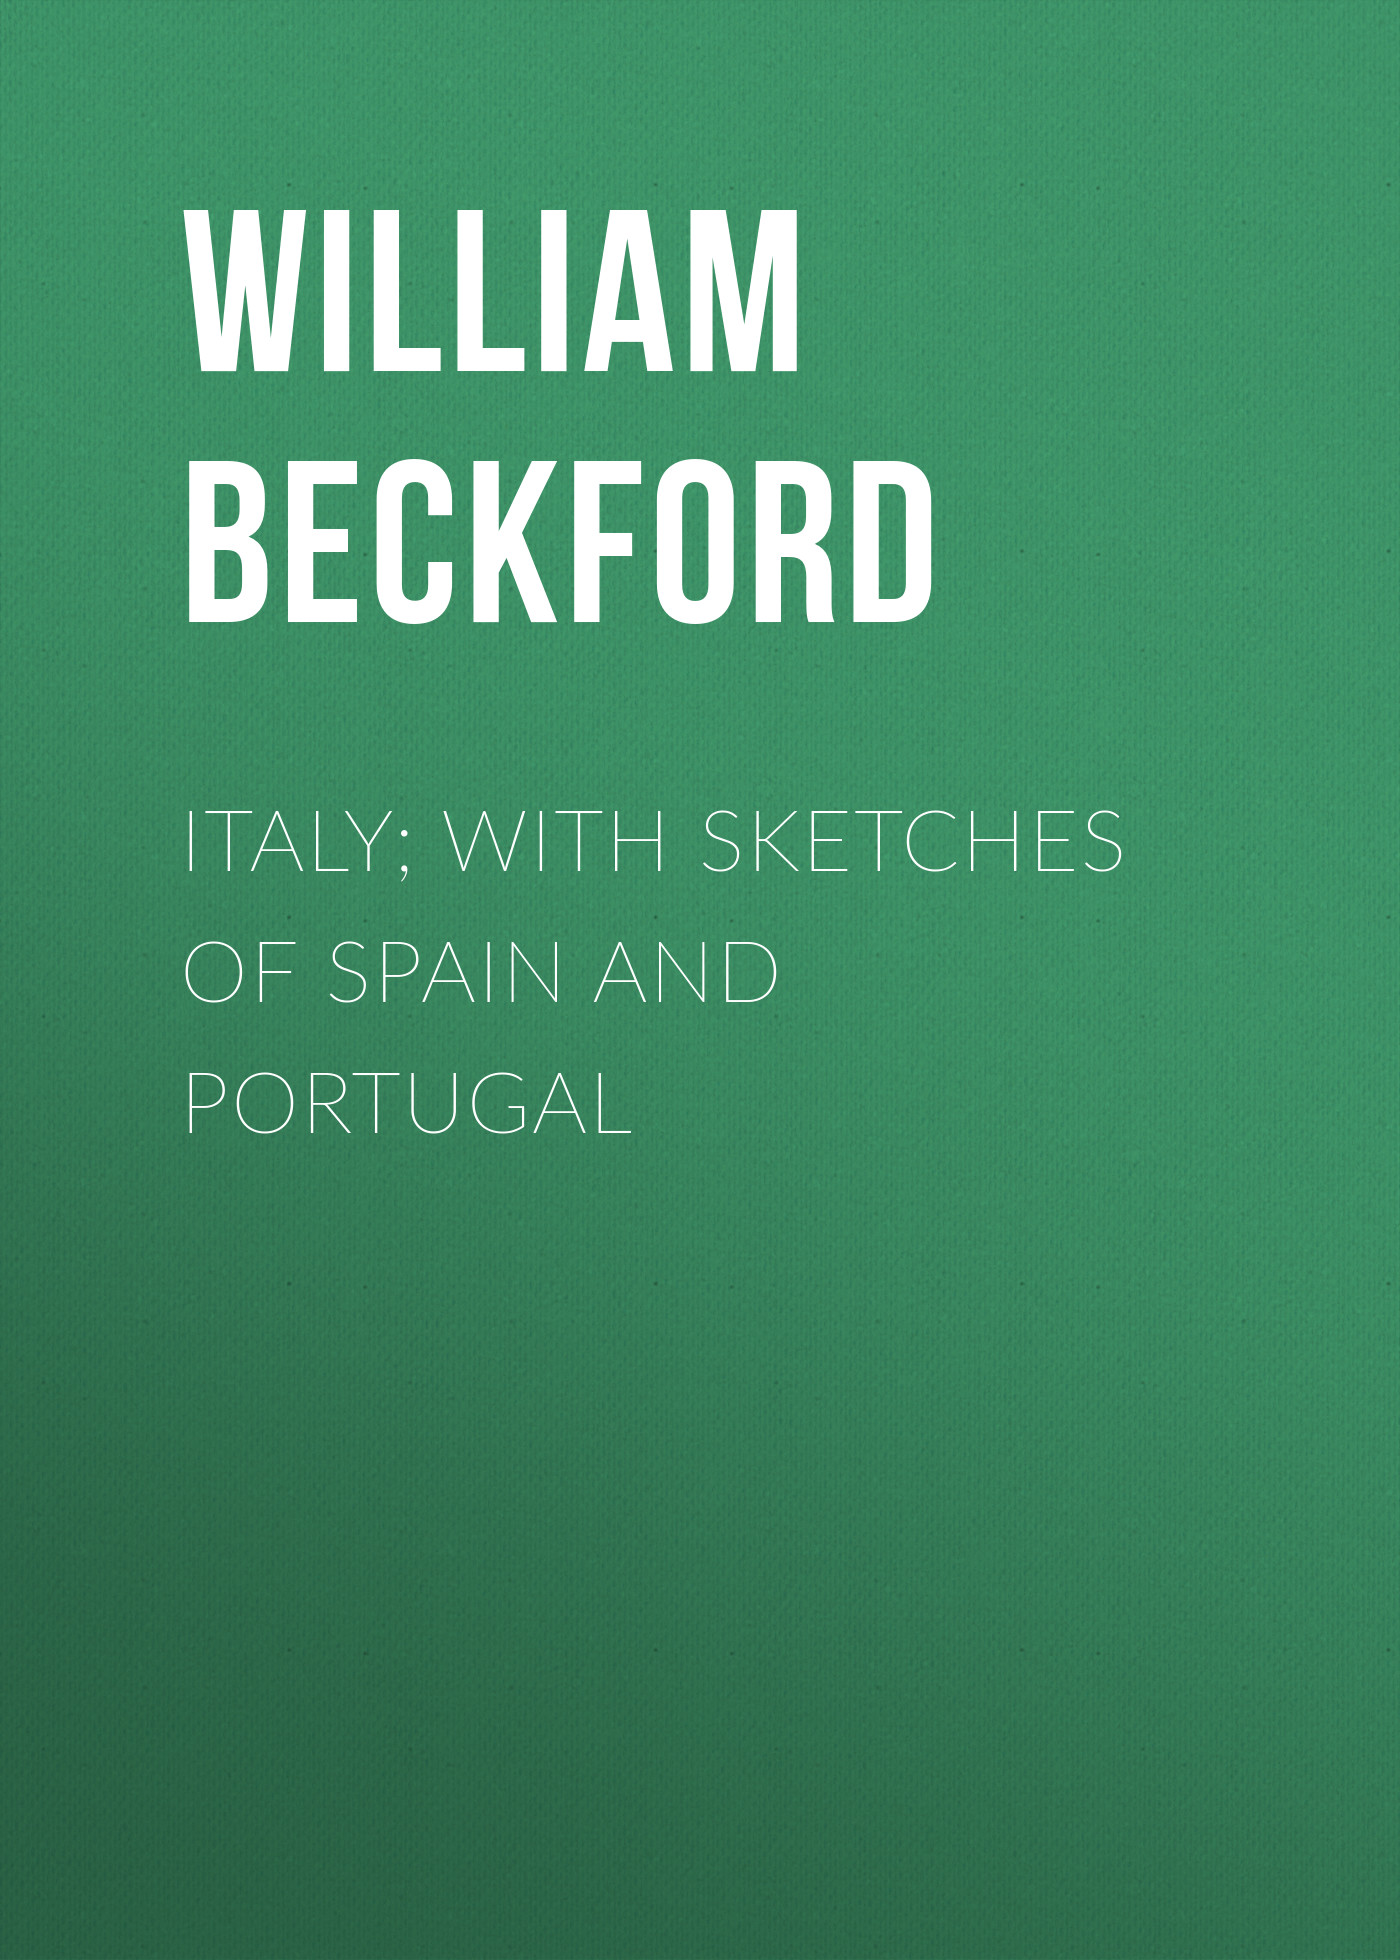 Beckford William Italy; with sketches of Spain and Portugal portugal brazil br layout new laptop keyboard with touchpad palmrest for samsung series 5 550p5c np550p5c